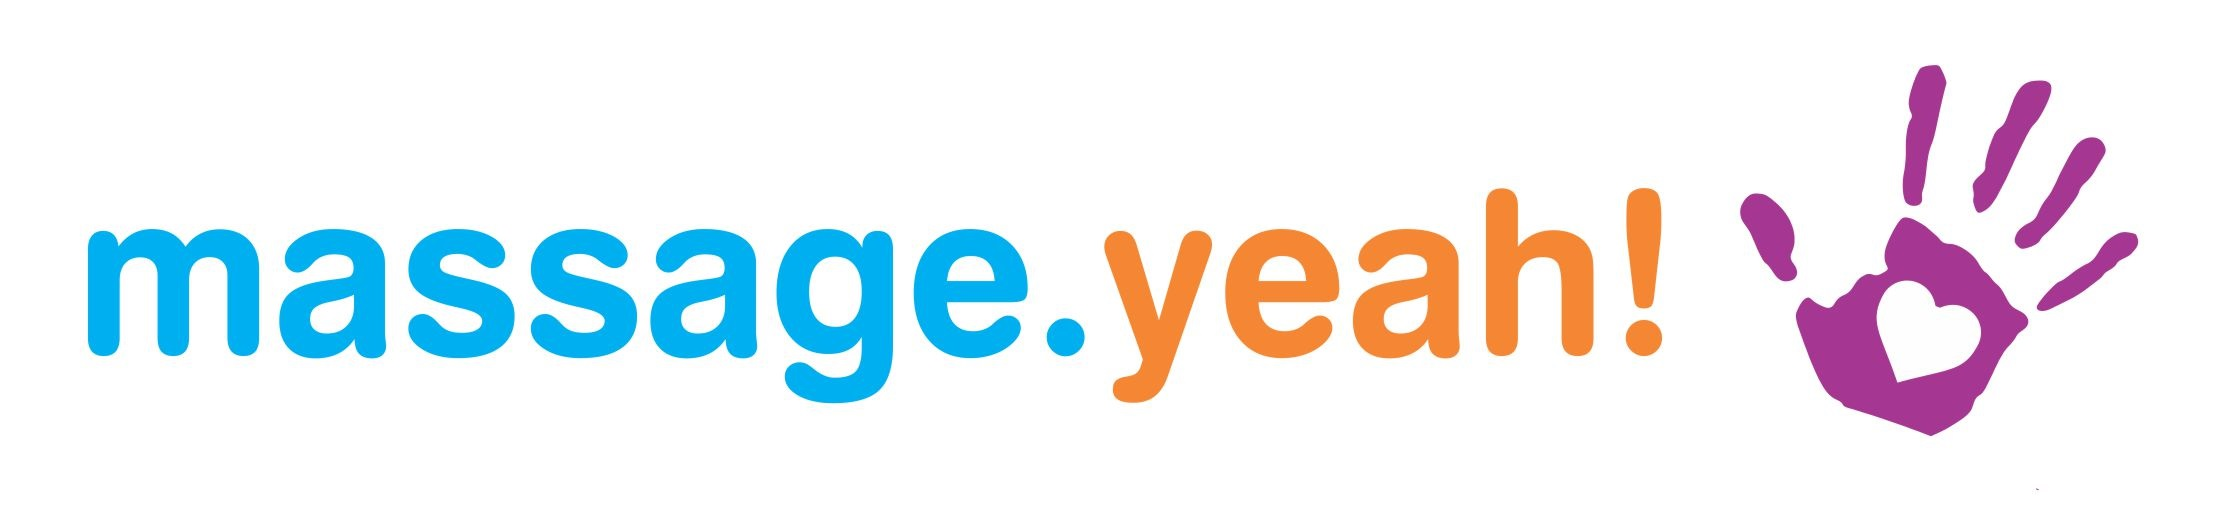 mobile-massage-goldcoast-massageyeah-logo-long